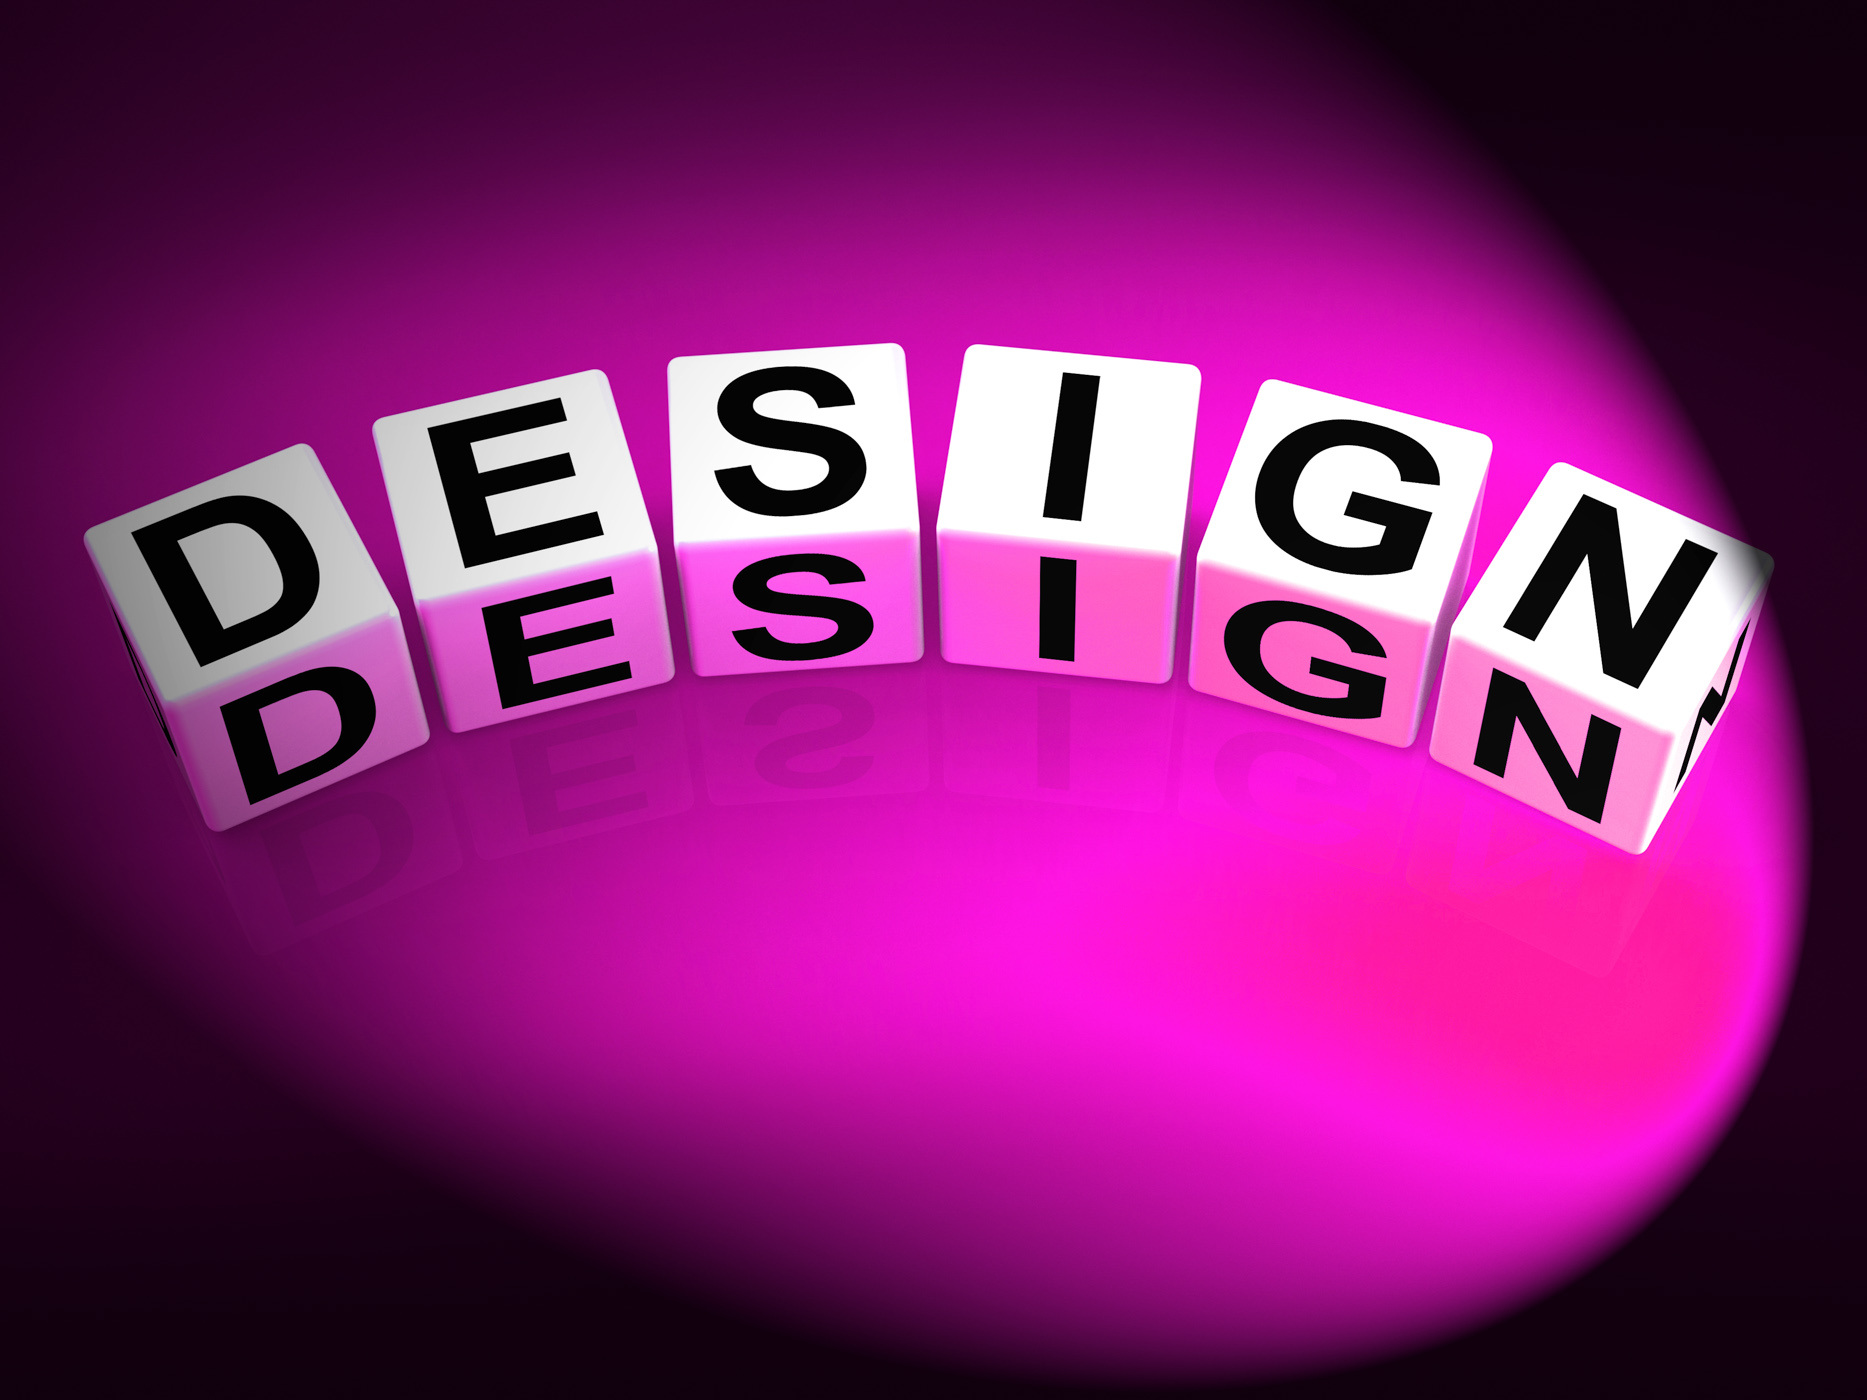 Design Dice Mean to Design Create and to Diagram, Concept, Diagrams, Plan, Models, HQ Photo